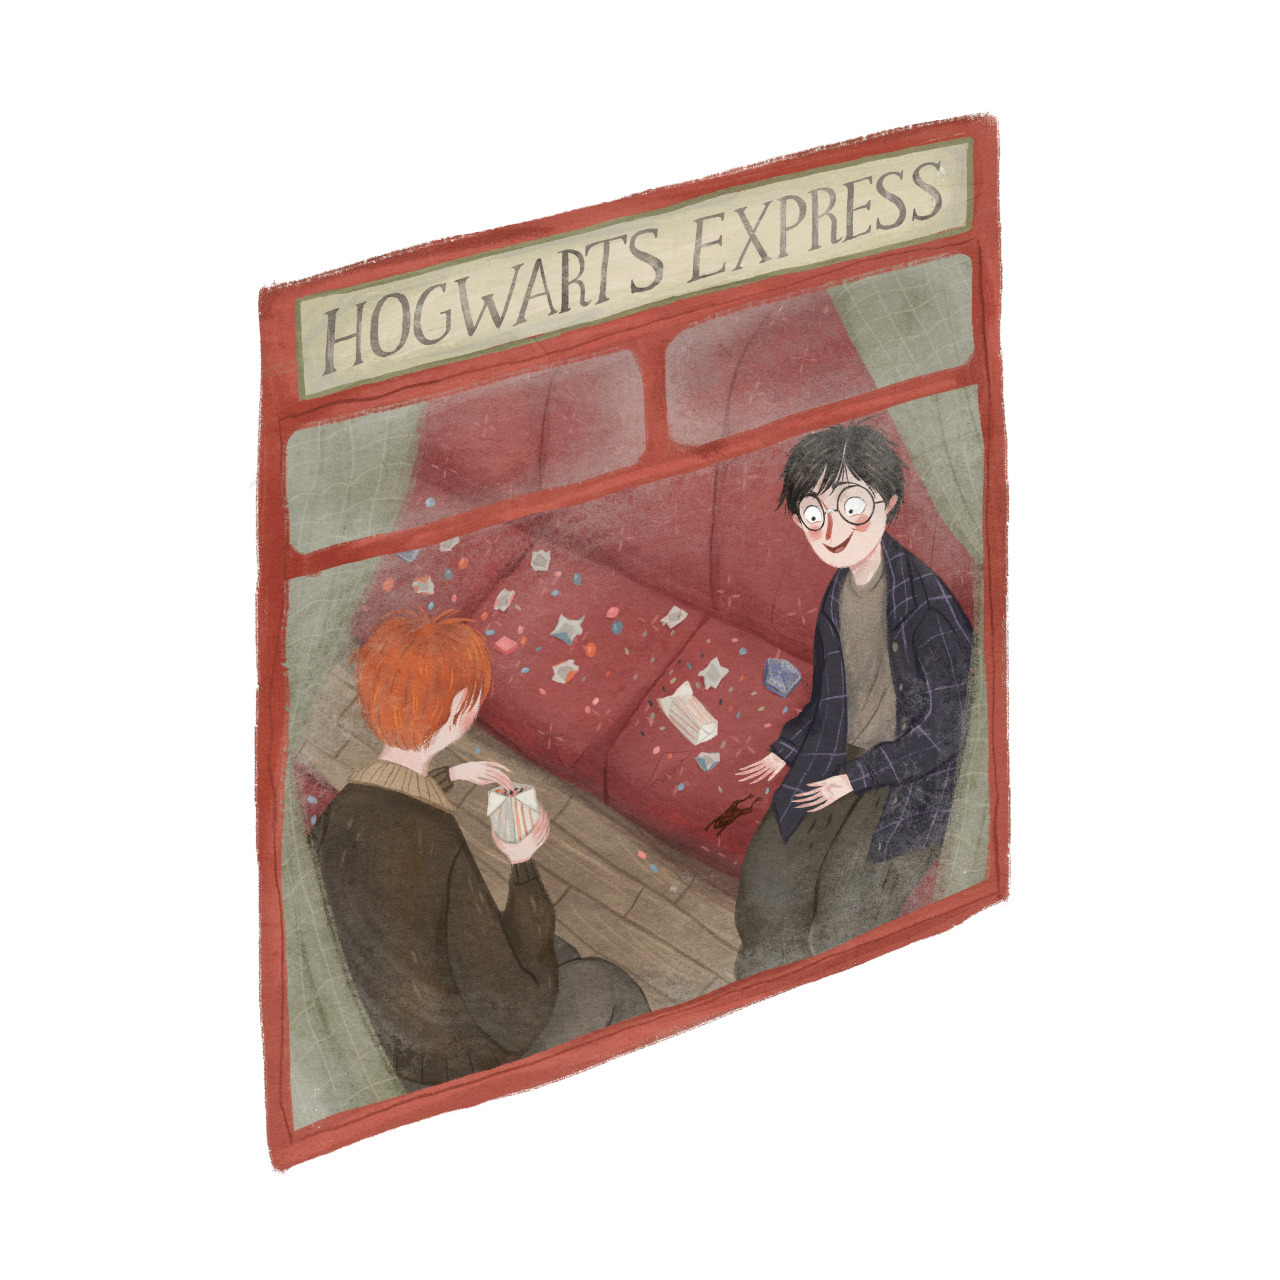 harry potter and illustration image